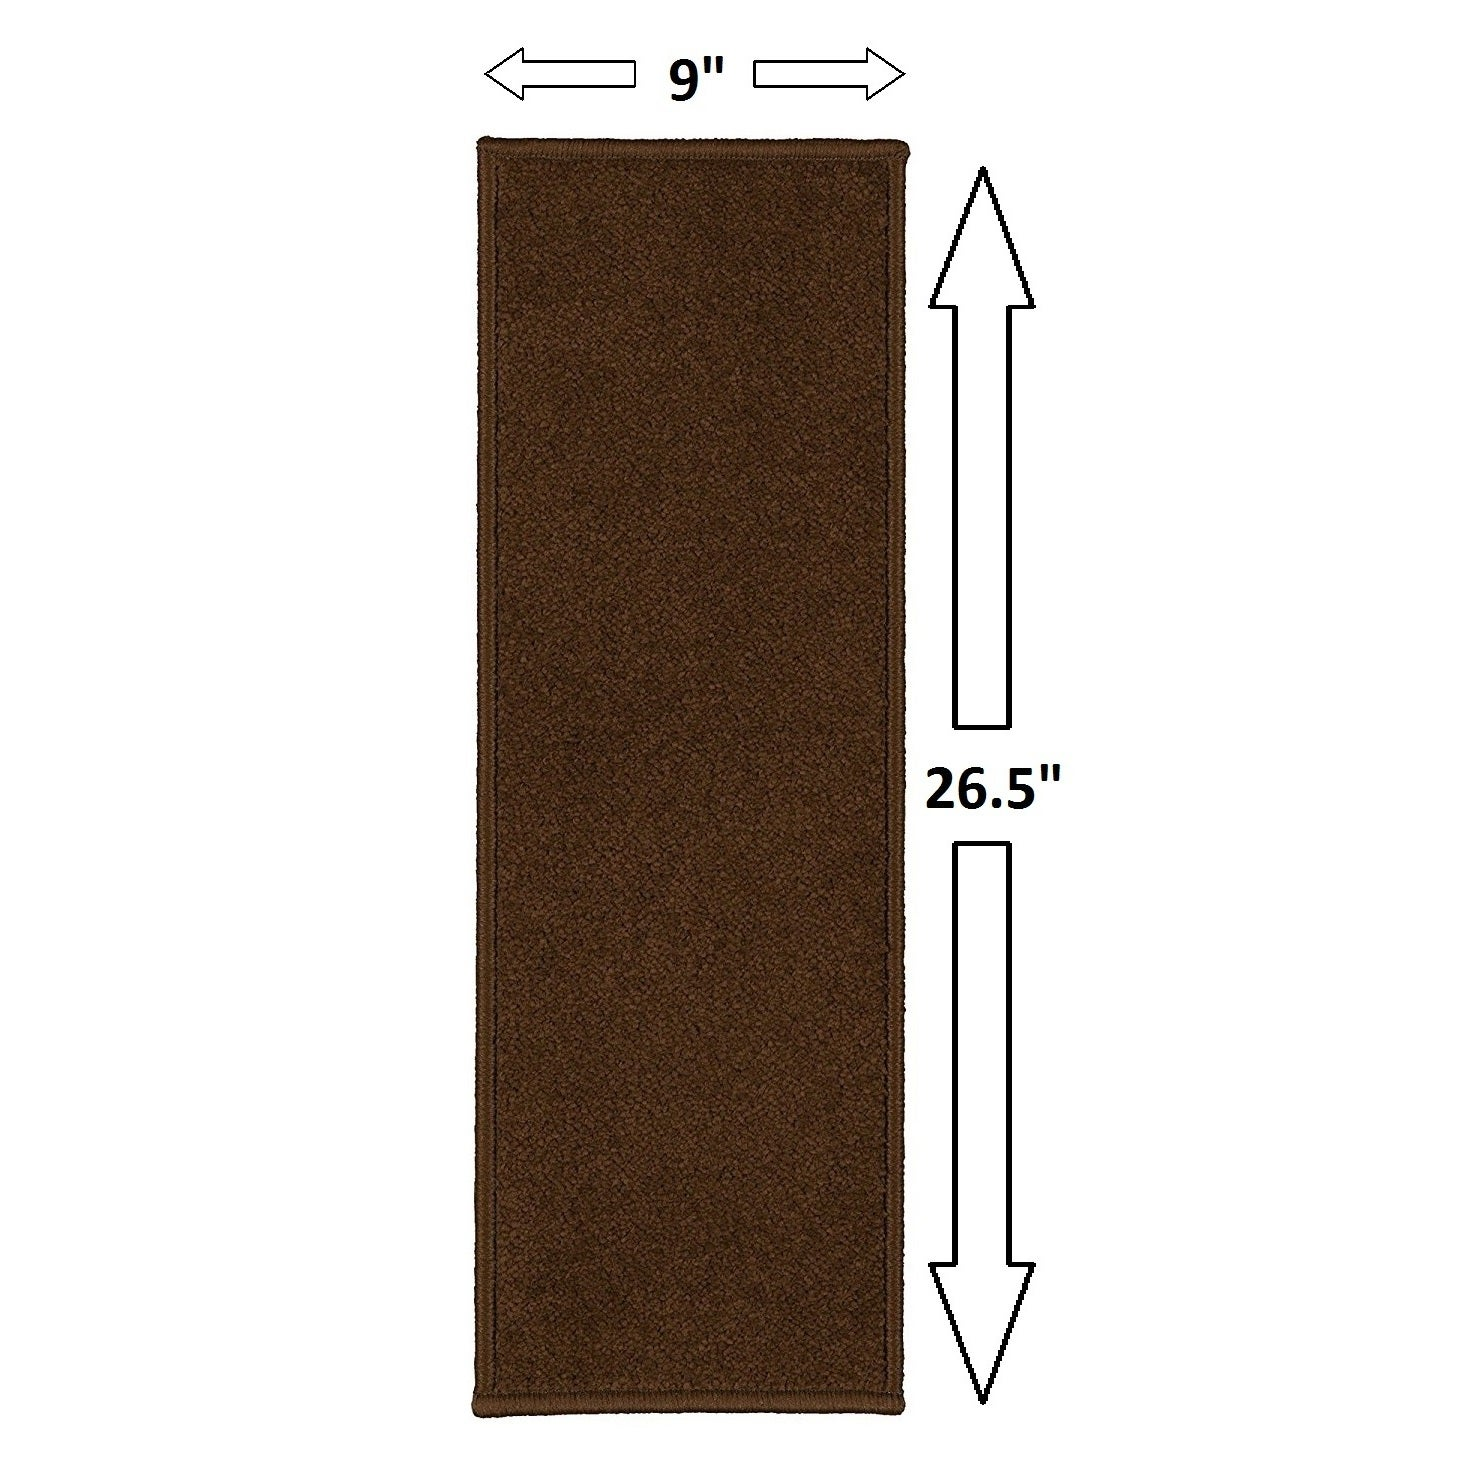 Awesome Casatreads Nonslip Rubber Backed Stair Tread (9 X 26.5)   Free Shipping  Today   Overstock.com   23429733